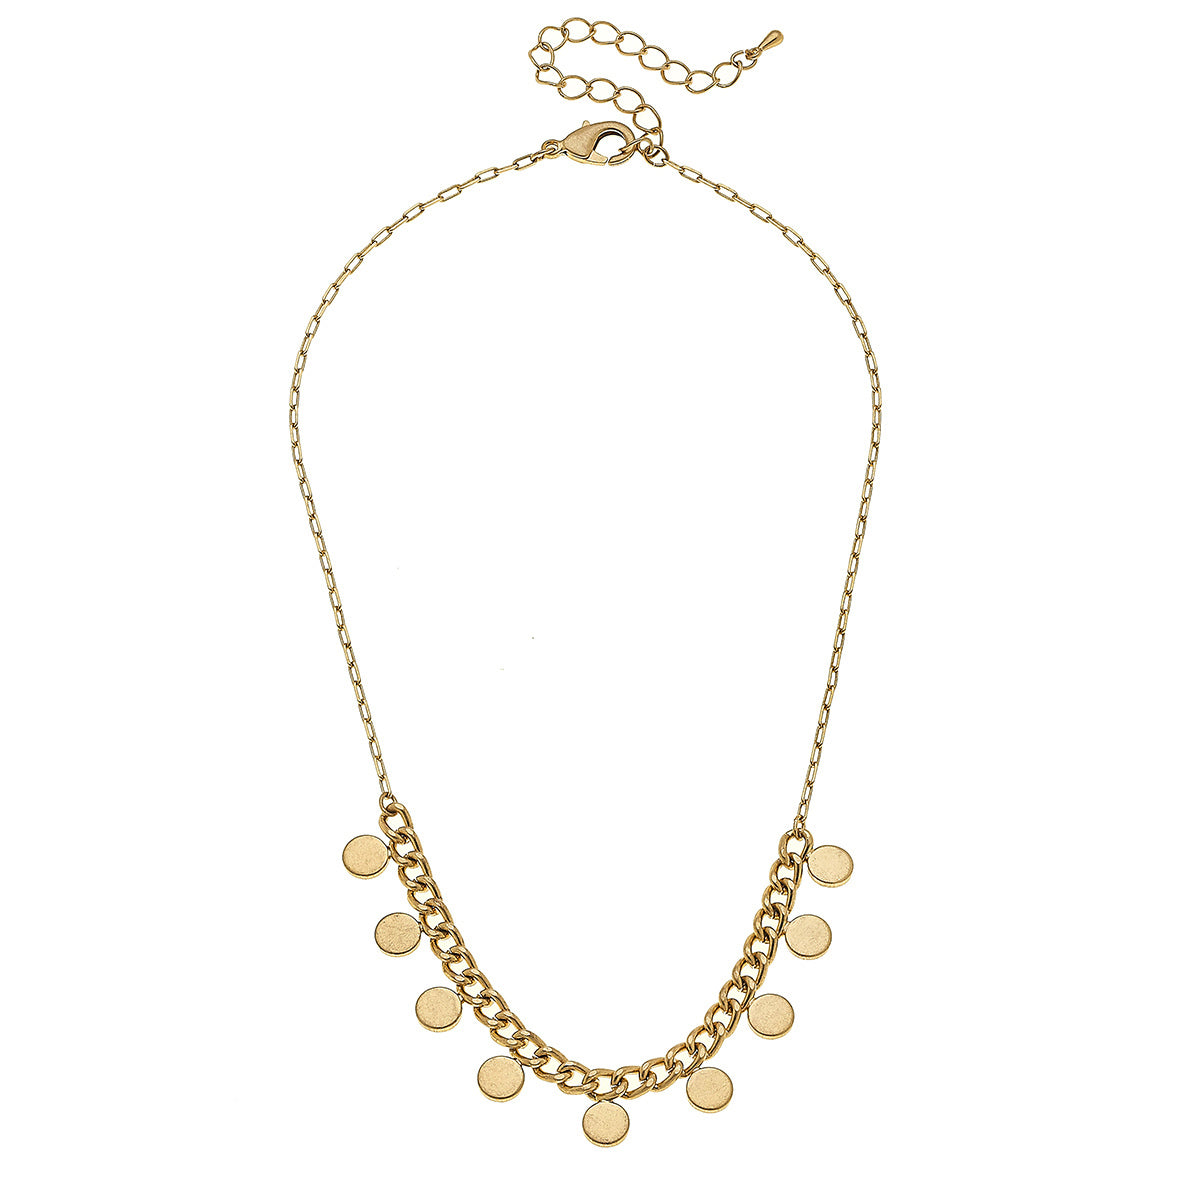 Maya Curb Chain Disc Necklace in Worn Gold